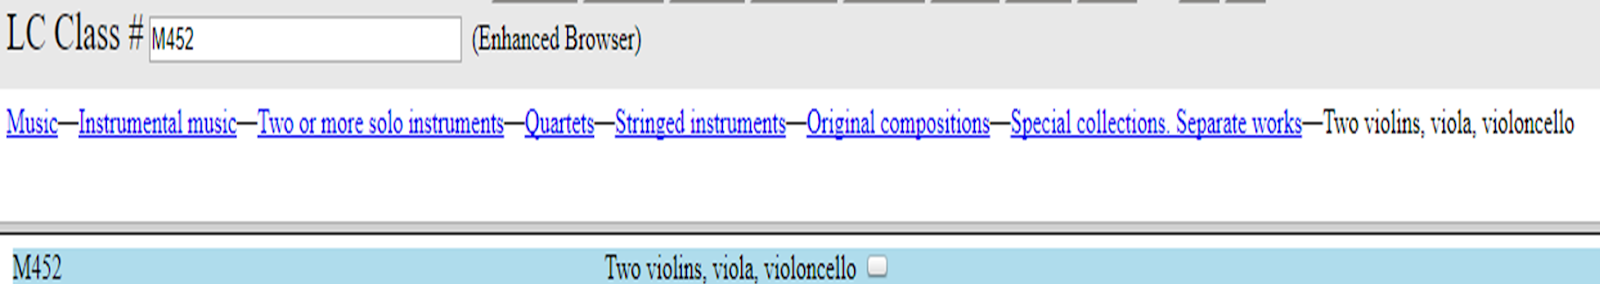 Figure 4: classification for string quartets (two violins, viola, violoncello).  Source: www.classificationweb.net.